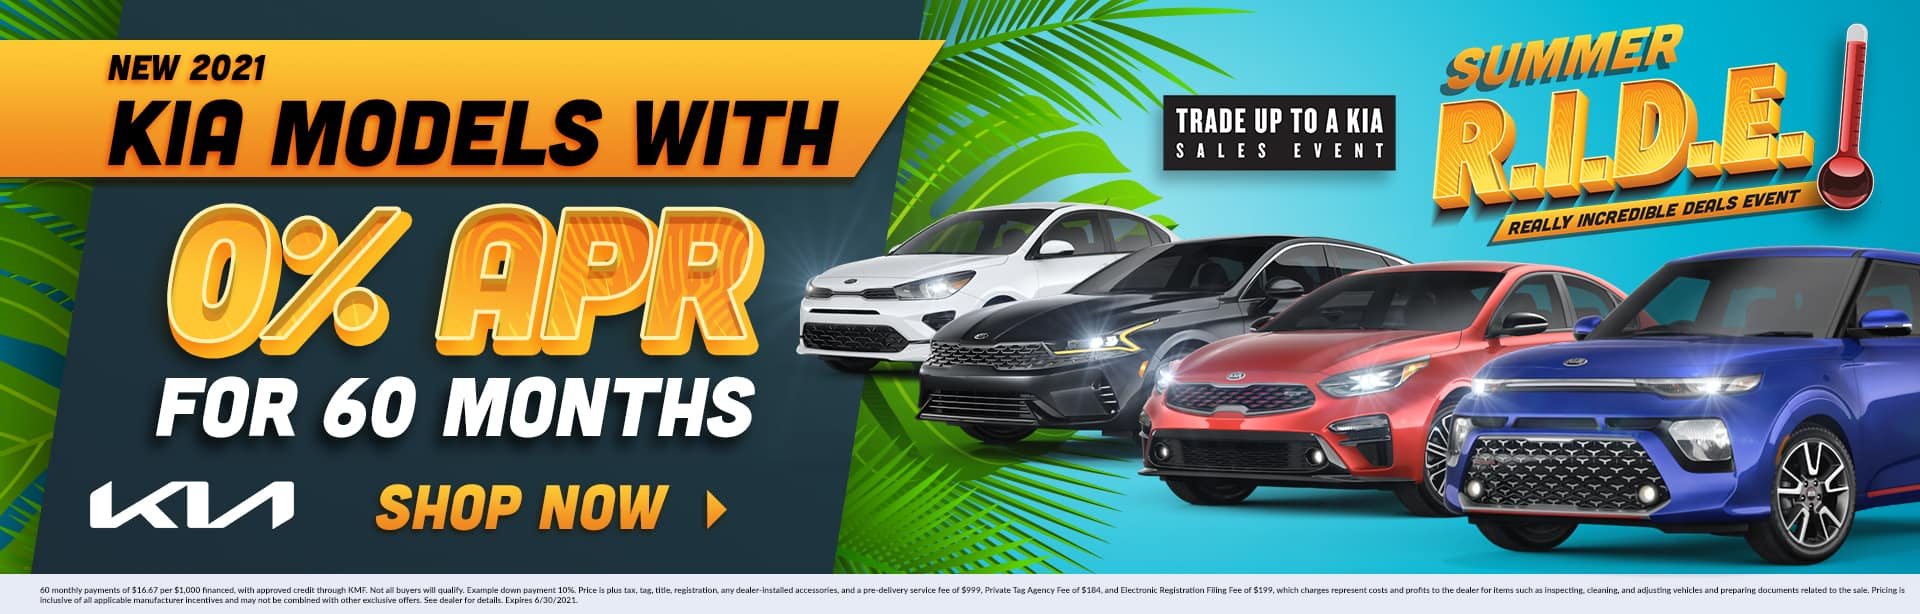 Summer R.I.D.E | Really Incredible Deals Event | New 2021 Kia Models With 0% APR For 60 Months